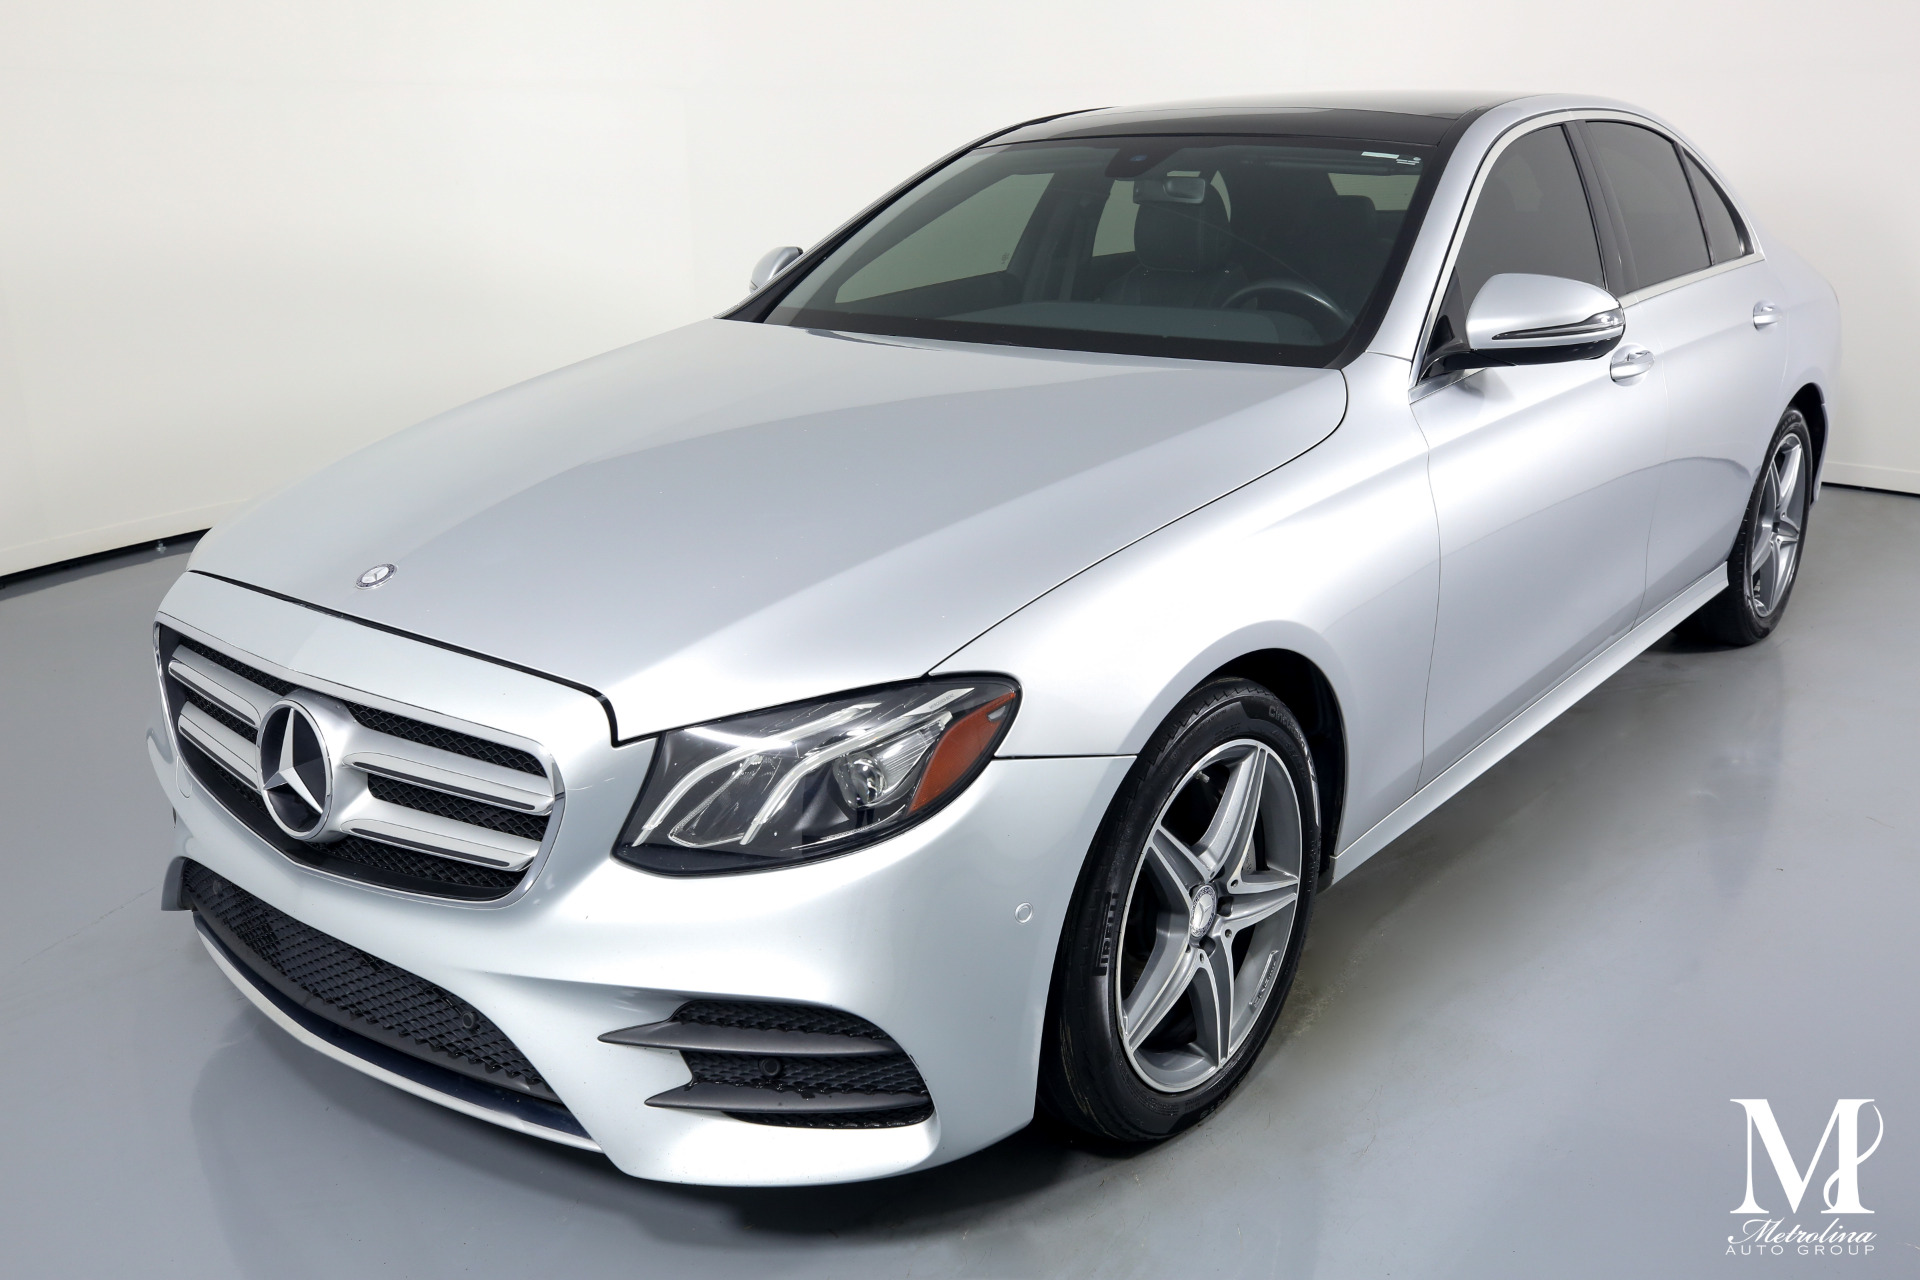 Used 2017 Mercedes-Benz E-Class E 300 4MATIC for sale $31,996 at Metrolina Auto Group in Charlotte NC 28217 - 4